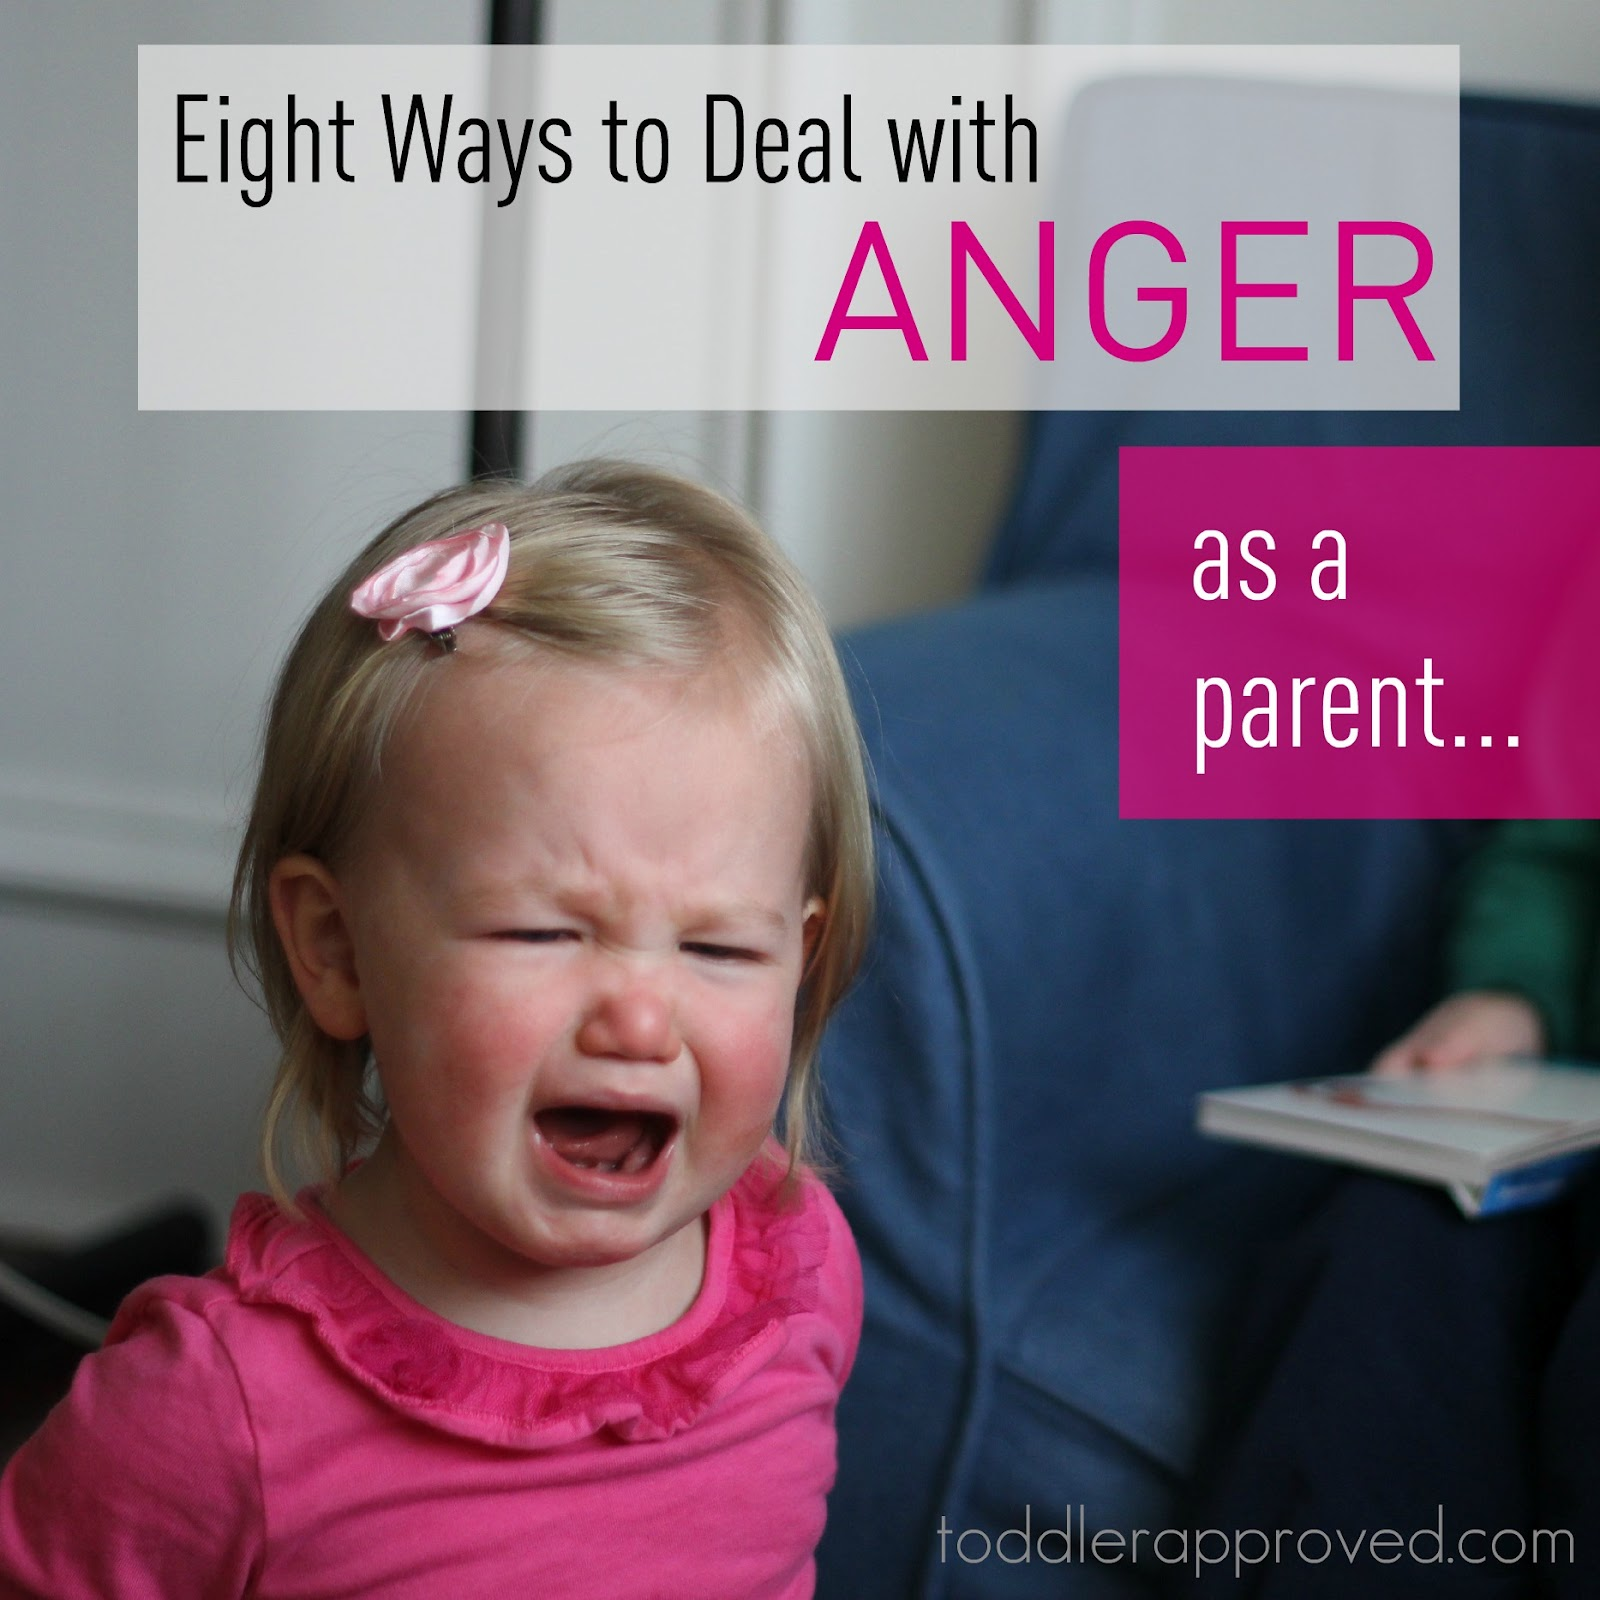 Toddler Approved!: A Parenting Moment: Eight Ways to Deal with ...